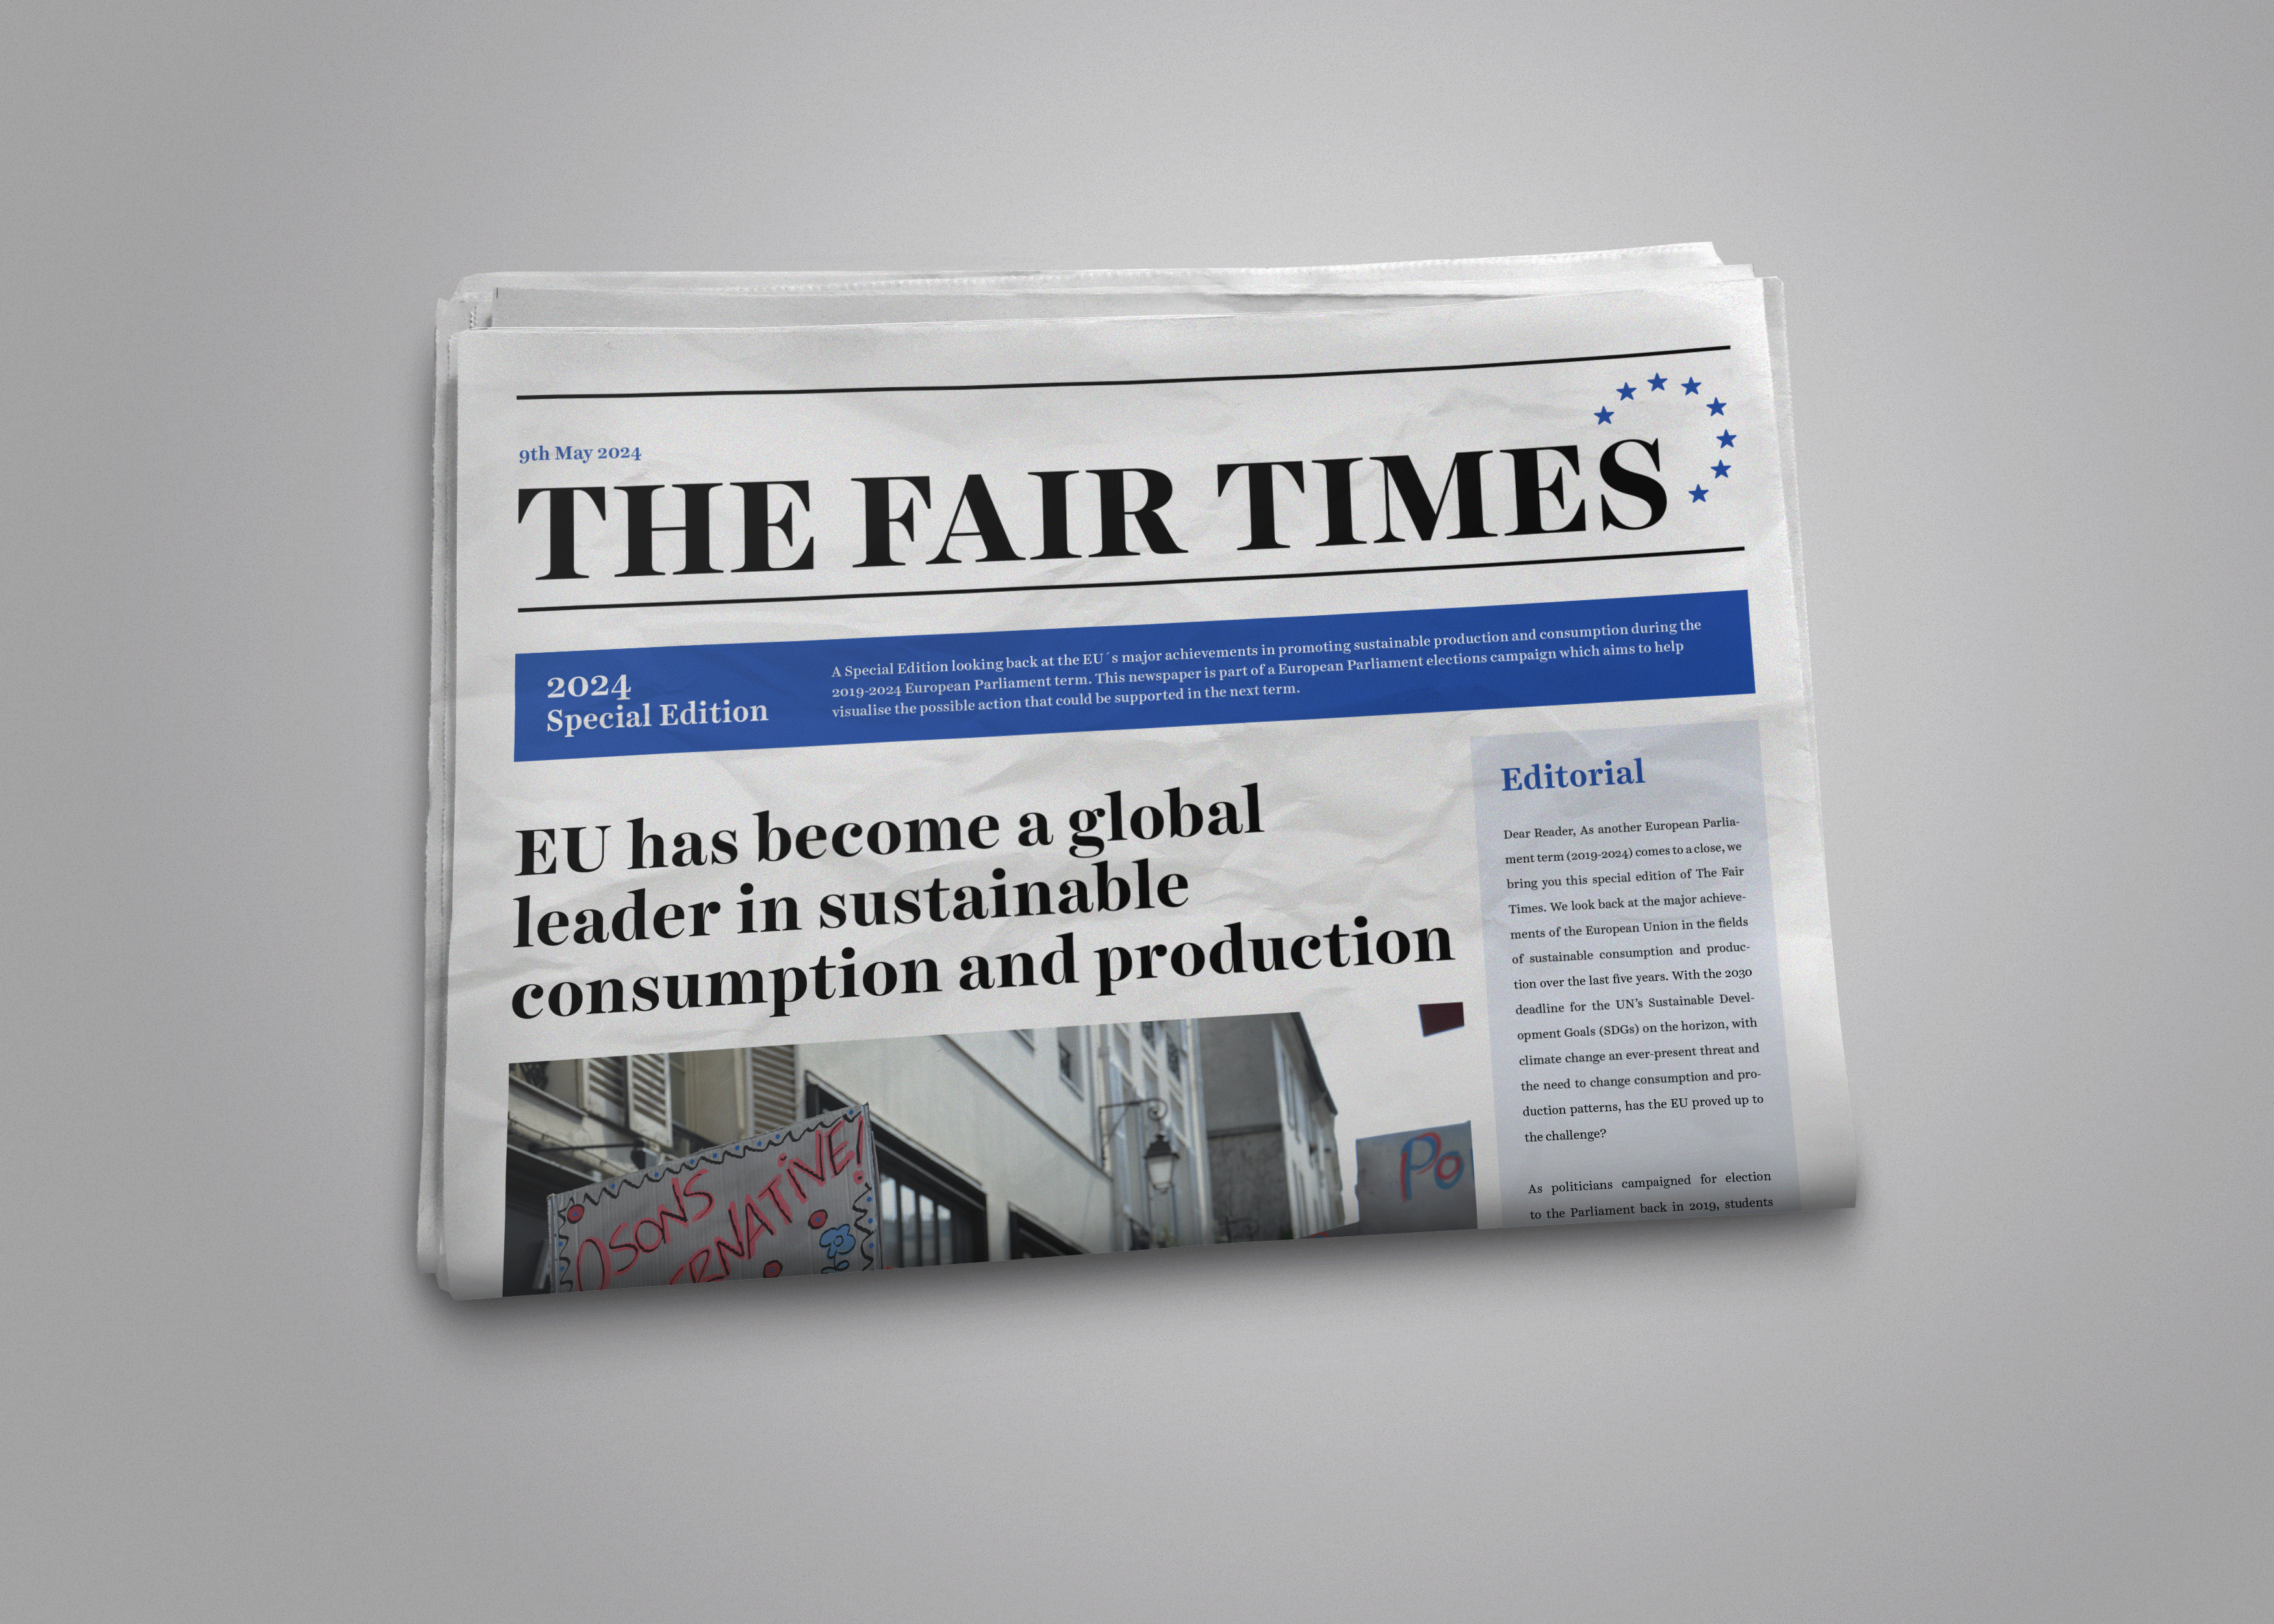 THE FAIR TIMES NEWSPAPER MOCKUP